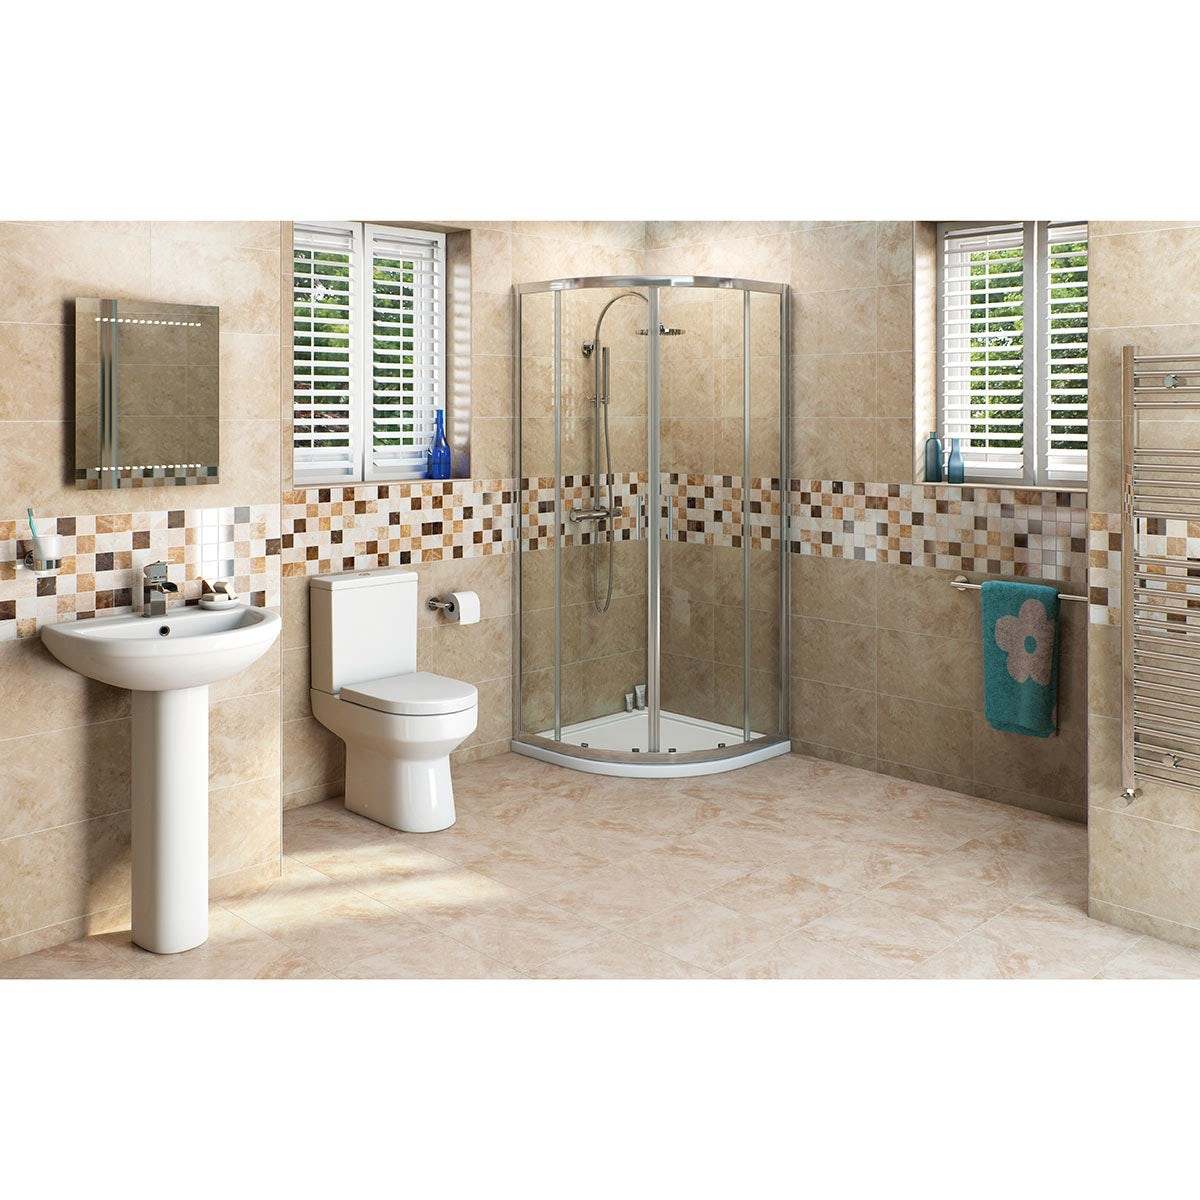 Orchard Wharfe ensuite shower bundle with quadrant enclosure and Mira Antislip shower tray